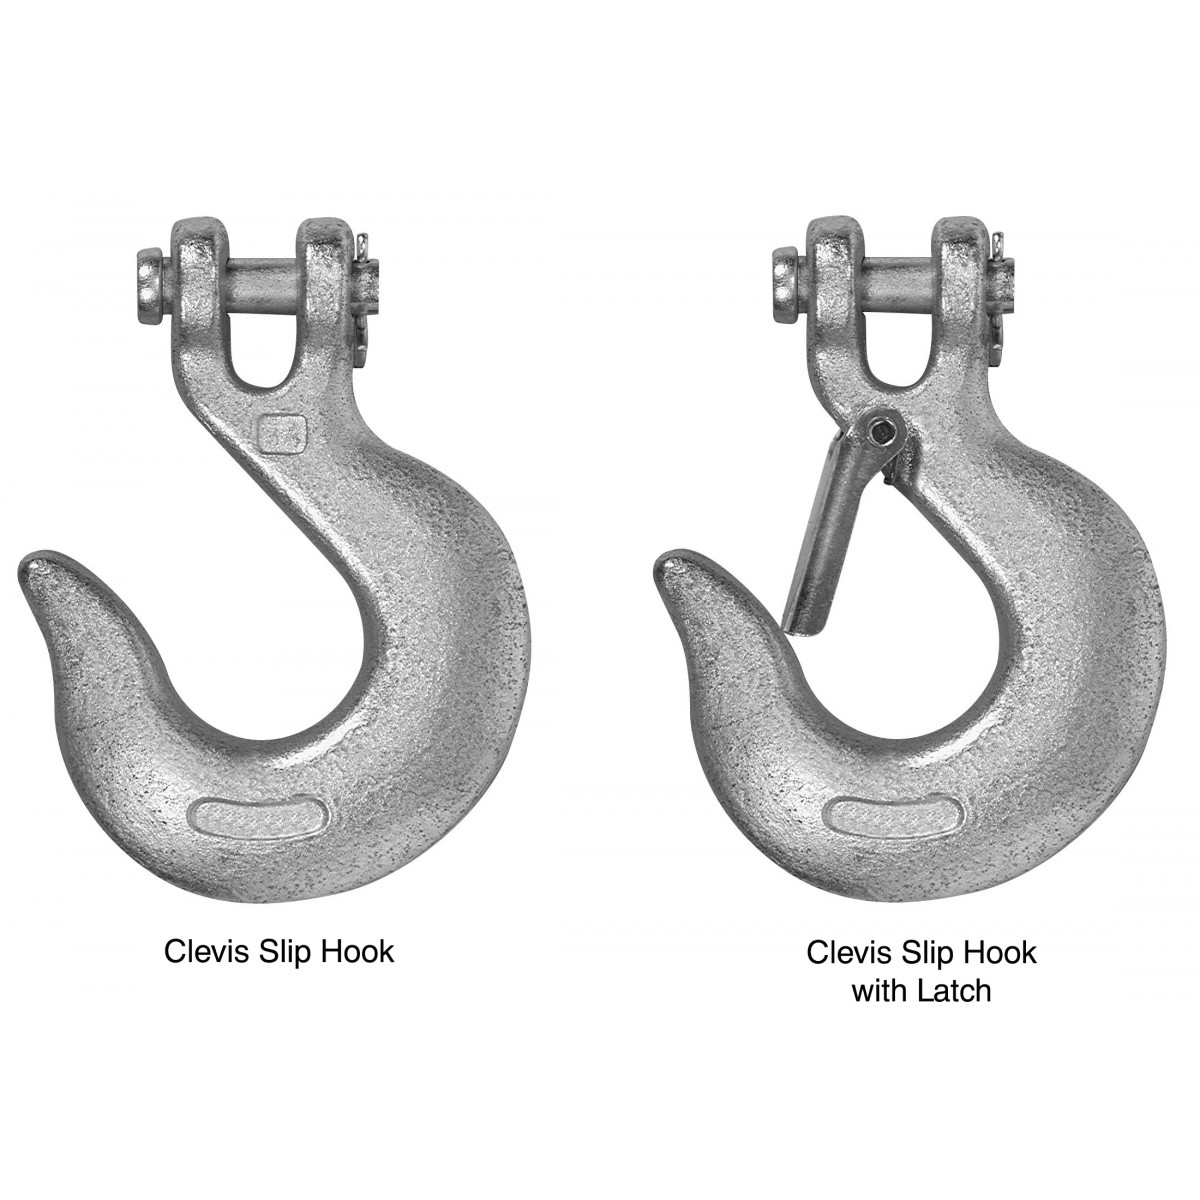 Picture of Campbell T9700424 Clevis Slip Hook with Latch, 1/4 in Trade, 2600 lb Working Load, 43 Grade, Steel, Zinc